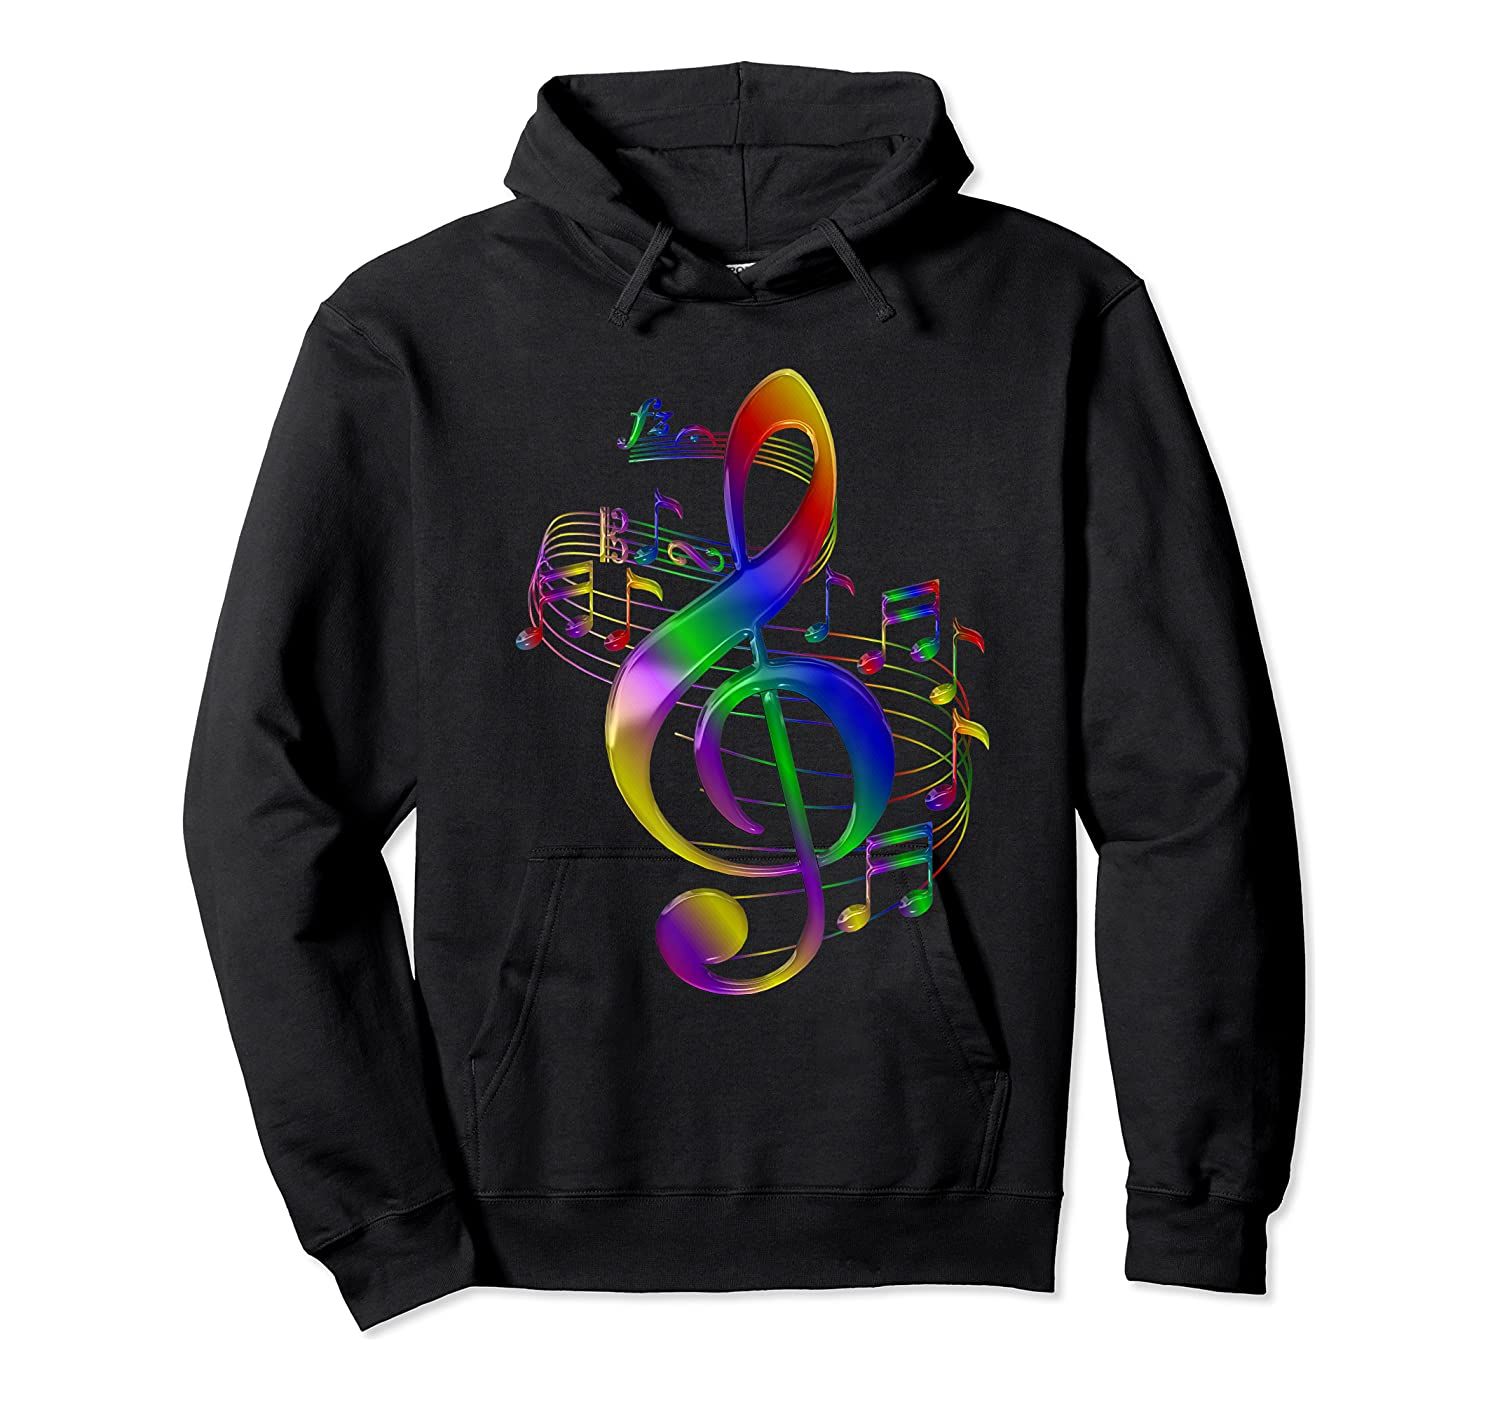 Treble Clef With Music Notes Shirts Unisex Pullover Hoodie